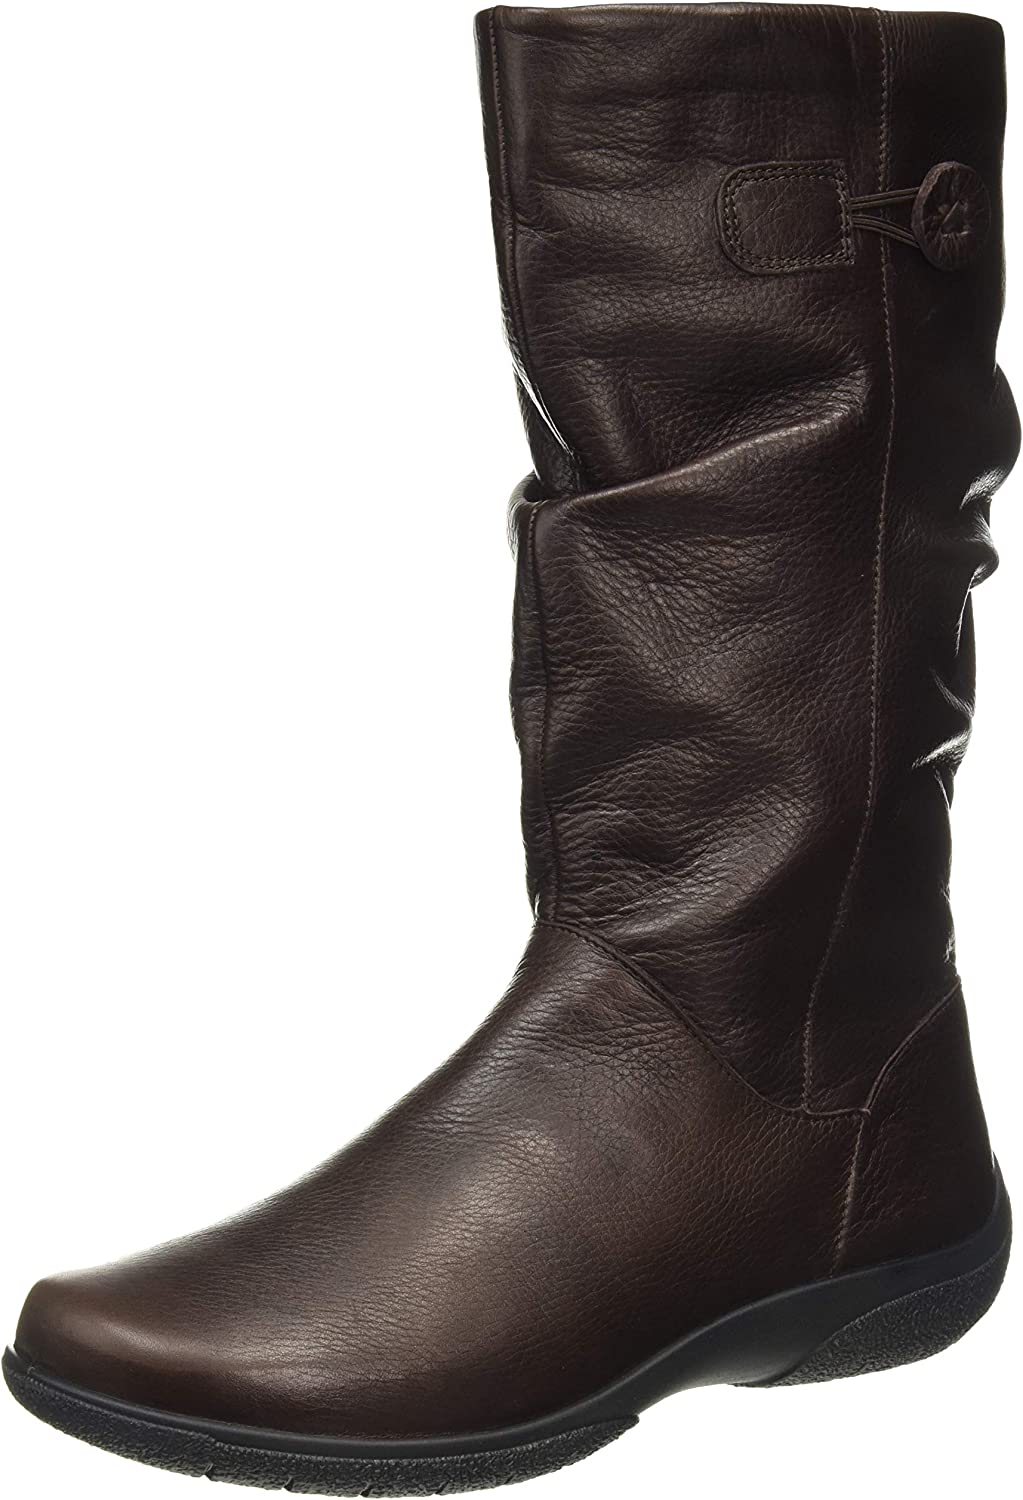 Hotter Women's Slouch Boot Max 42% OFF Calf Mid Ranking TOP16